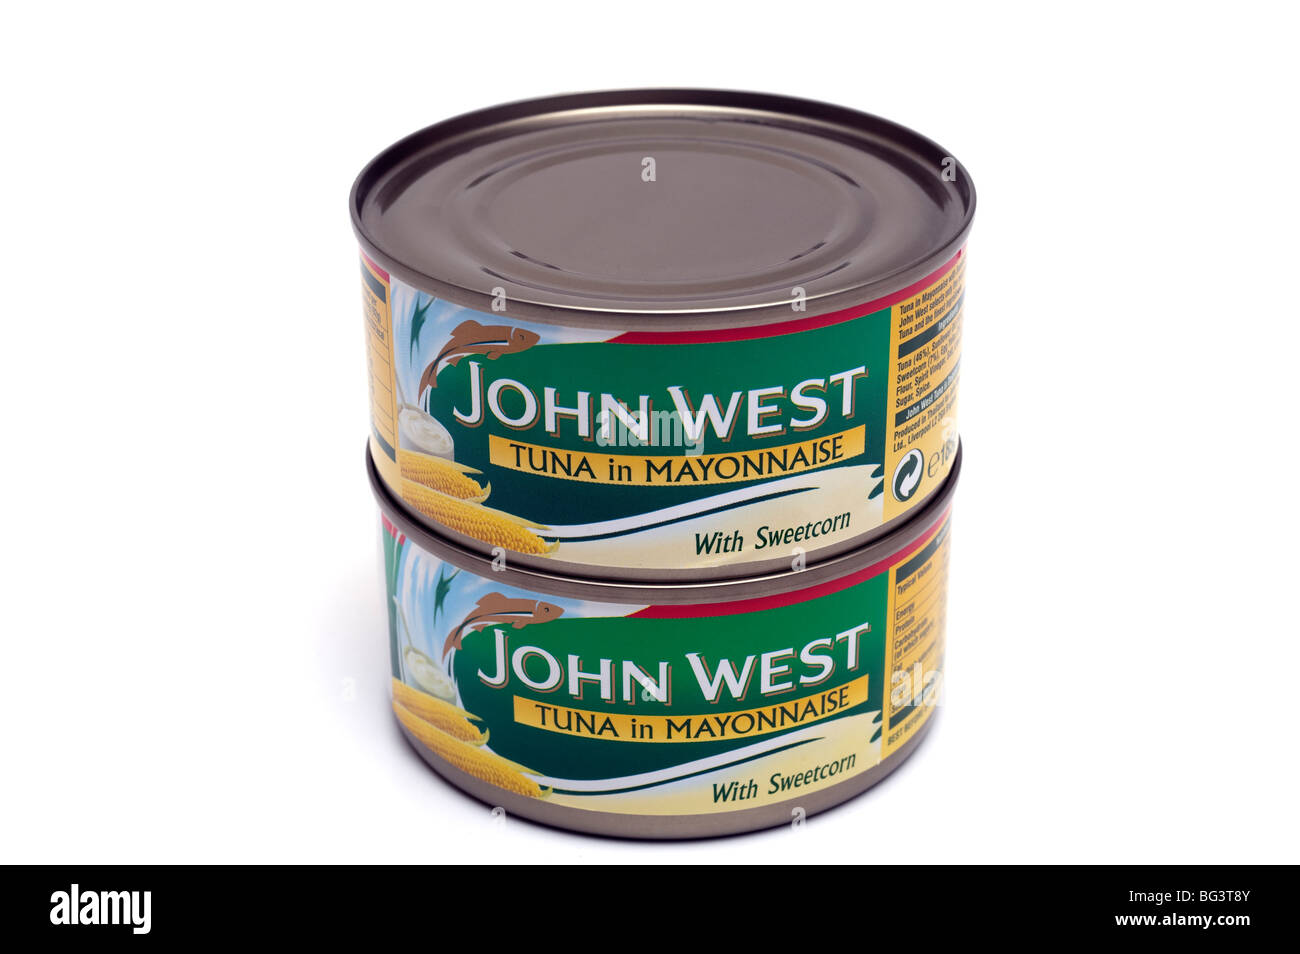 Two tins of John West Tuna in Mayonnaise with sweetcorn - Stock Image